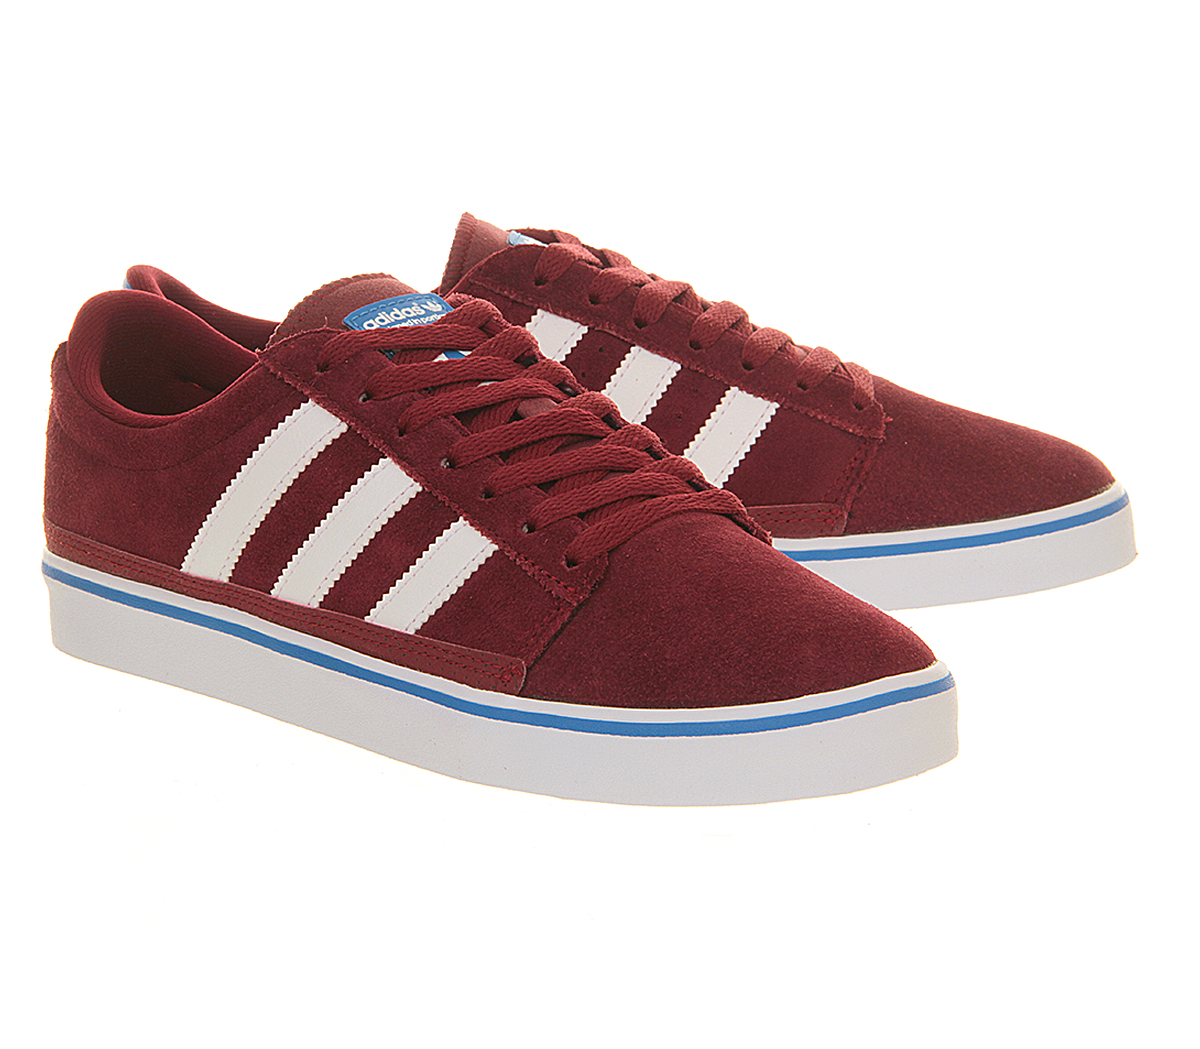 adidas Originals Rayado Low in White (Red) for Men